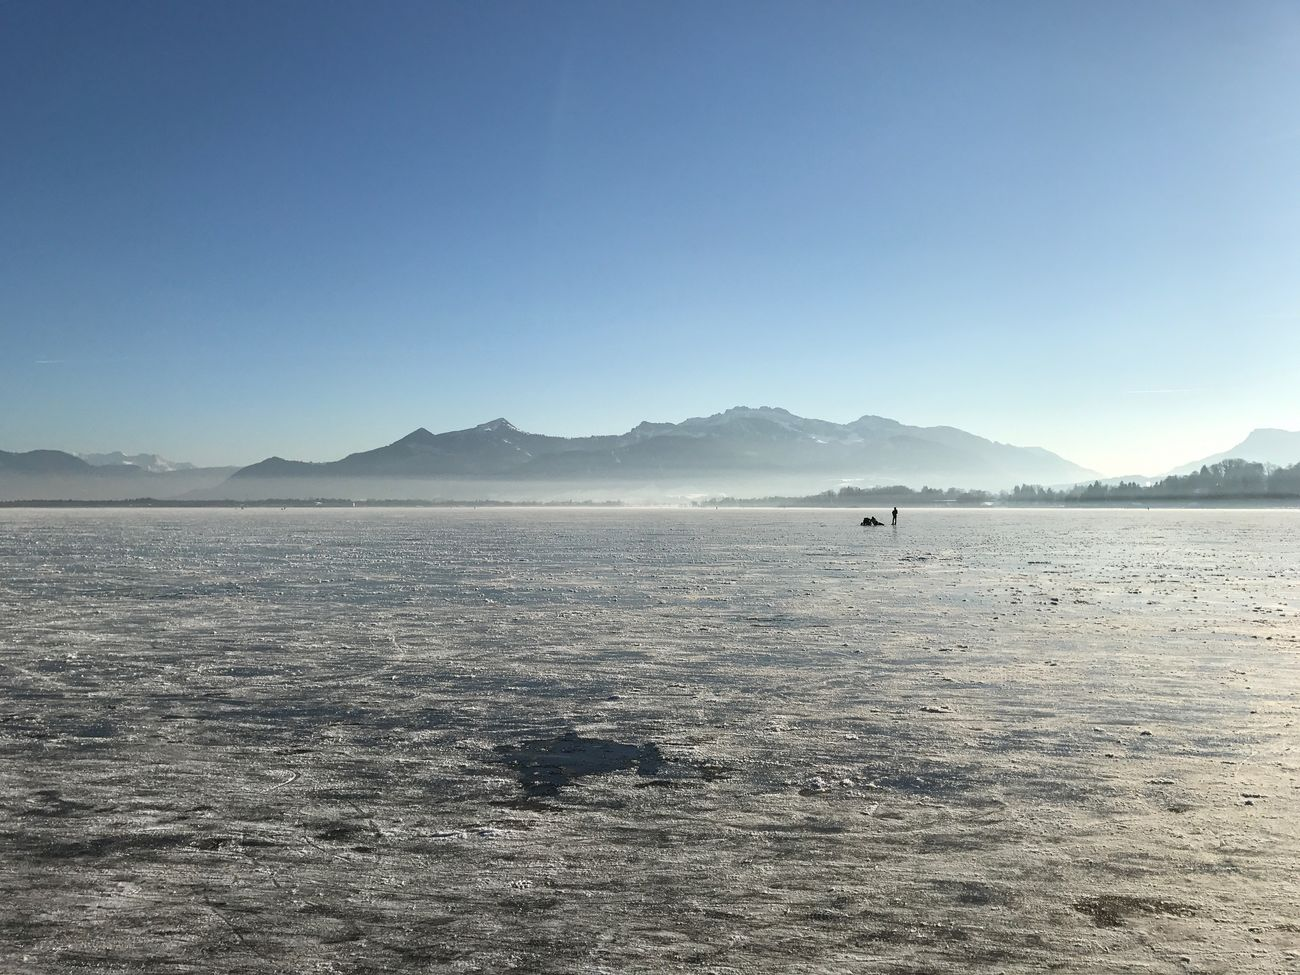 Mountain Outdoors Nature Beauty In Nature Scenics Landscape Day Clear Sky Water No People Sky Frozen lake